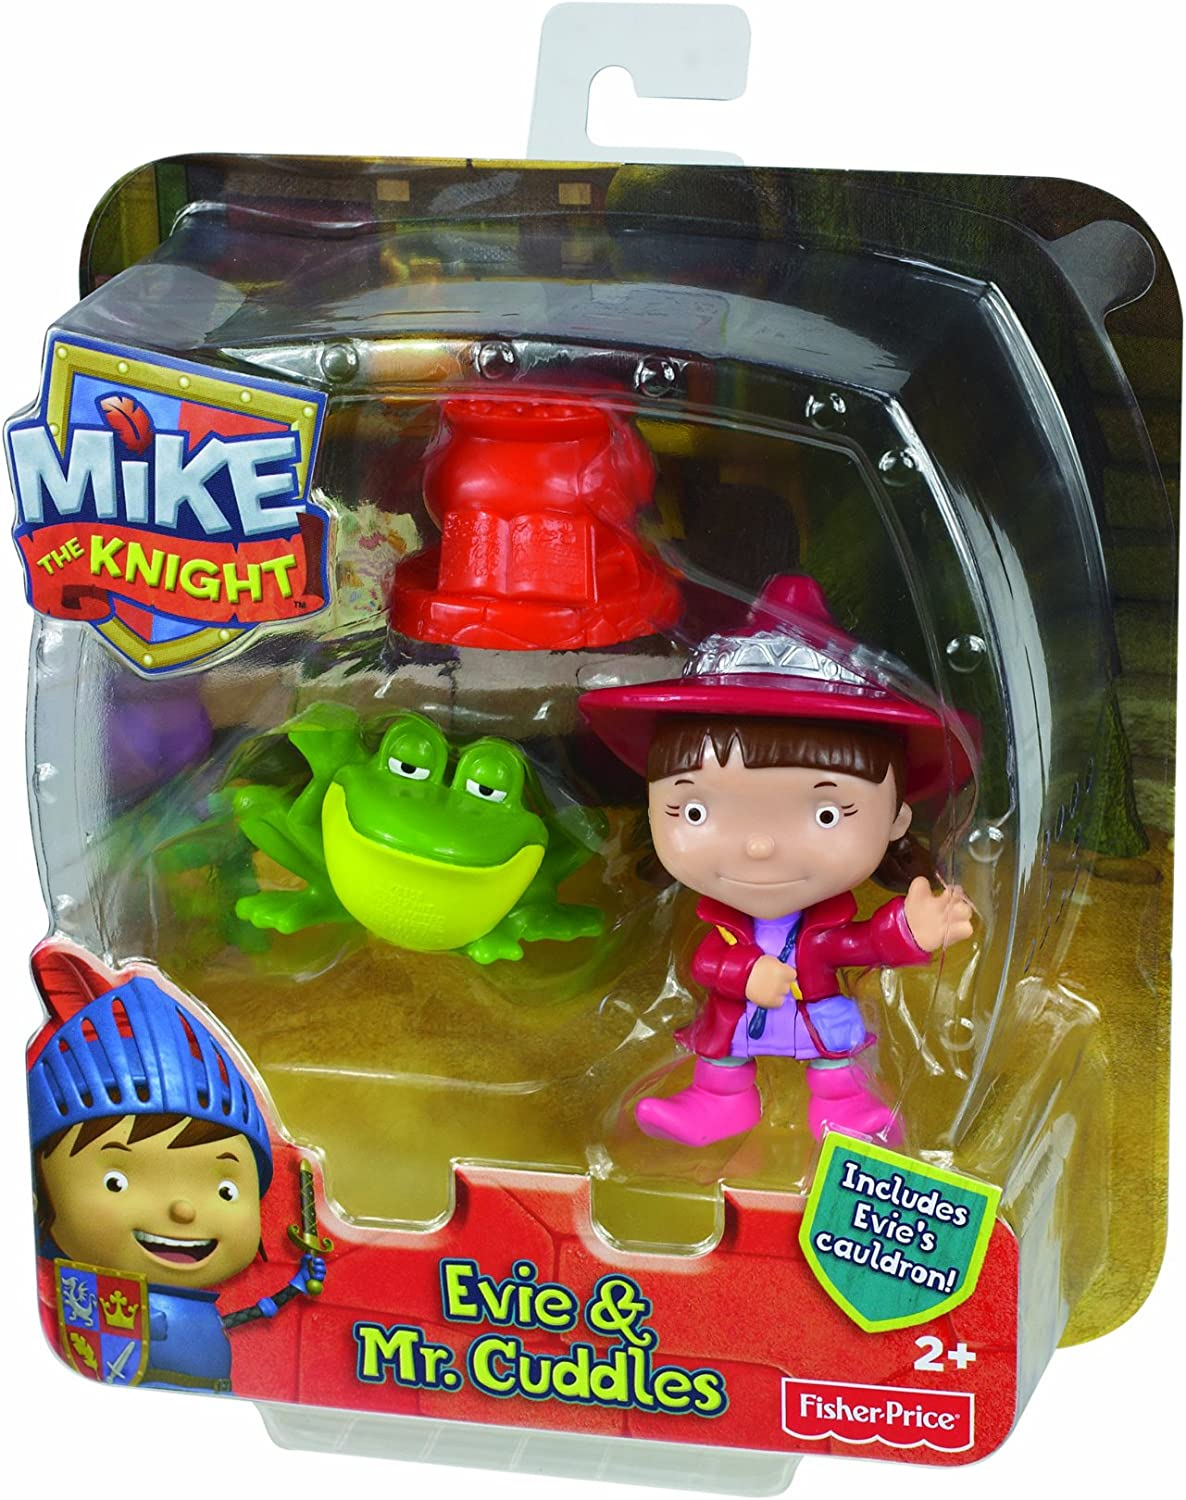 Mike The Knight Figure Toy Fisher-Price Evie /& Mr Cuddles